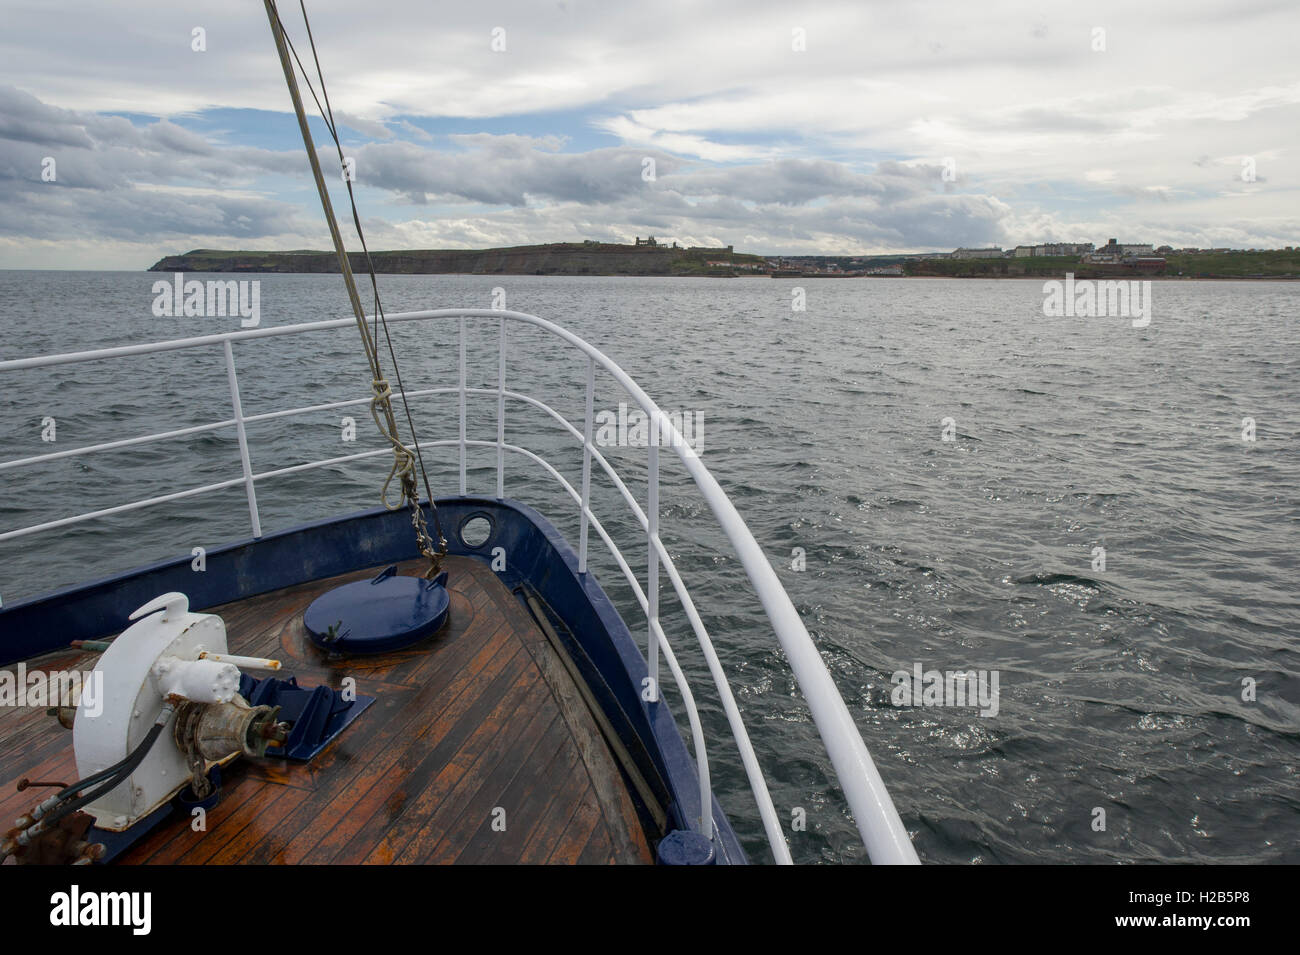 Sailing back towards Whitby after a successful Whale Watching Tour on the North Yorkshire Coast - Stock Image